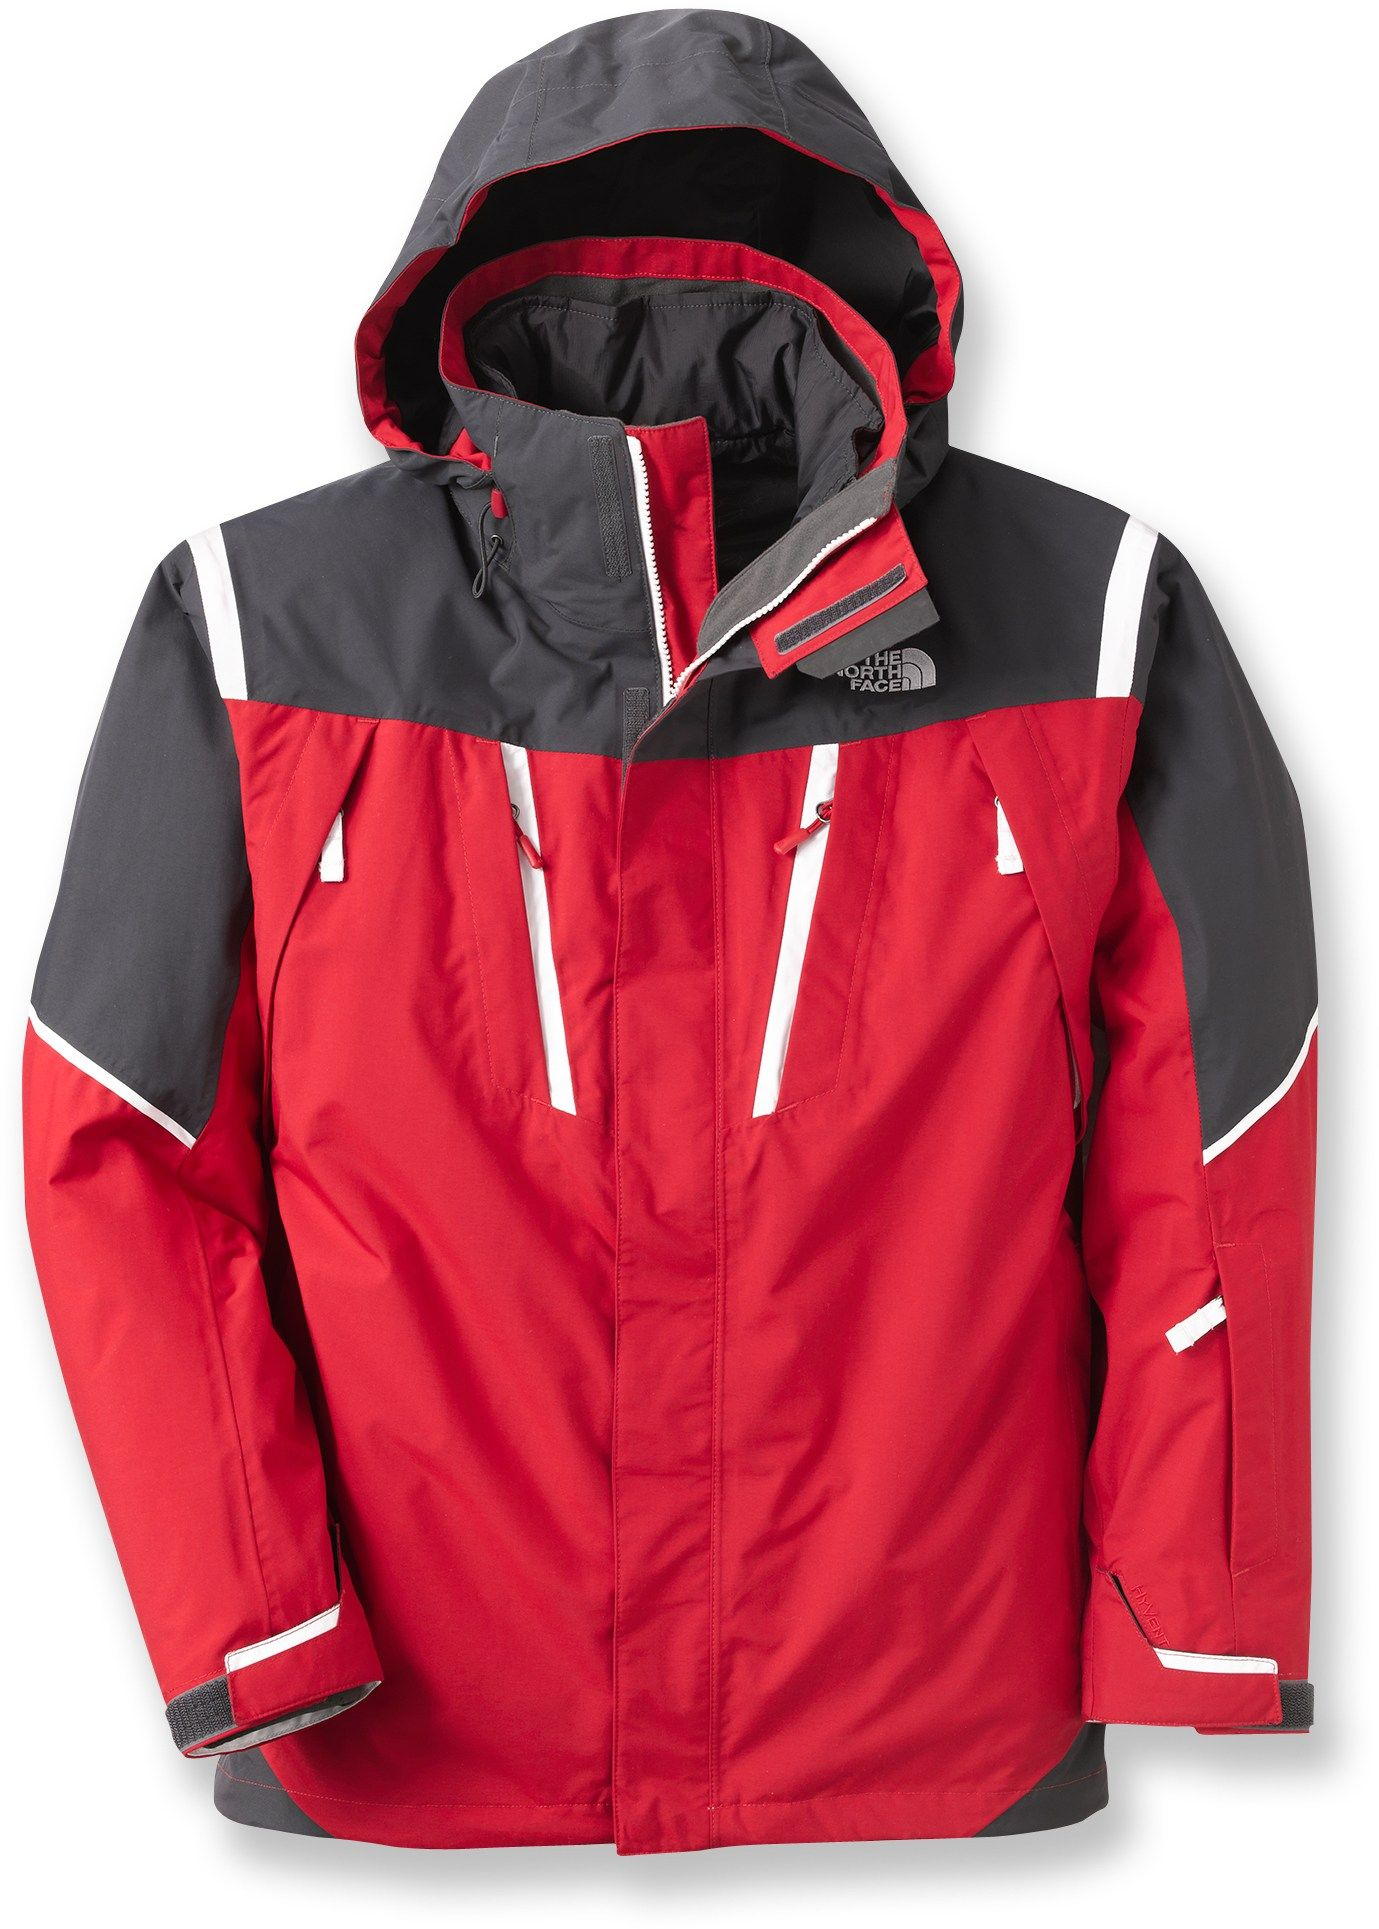 The North Face Vortex Triclimate 3 In 1 Insulated Jacket Men S Rei Co Op Mens Jackets Jackets The North Face [ 1929 x 1379 Pixel ]